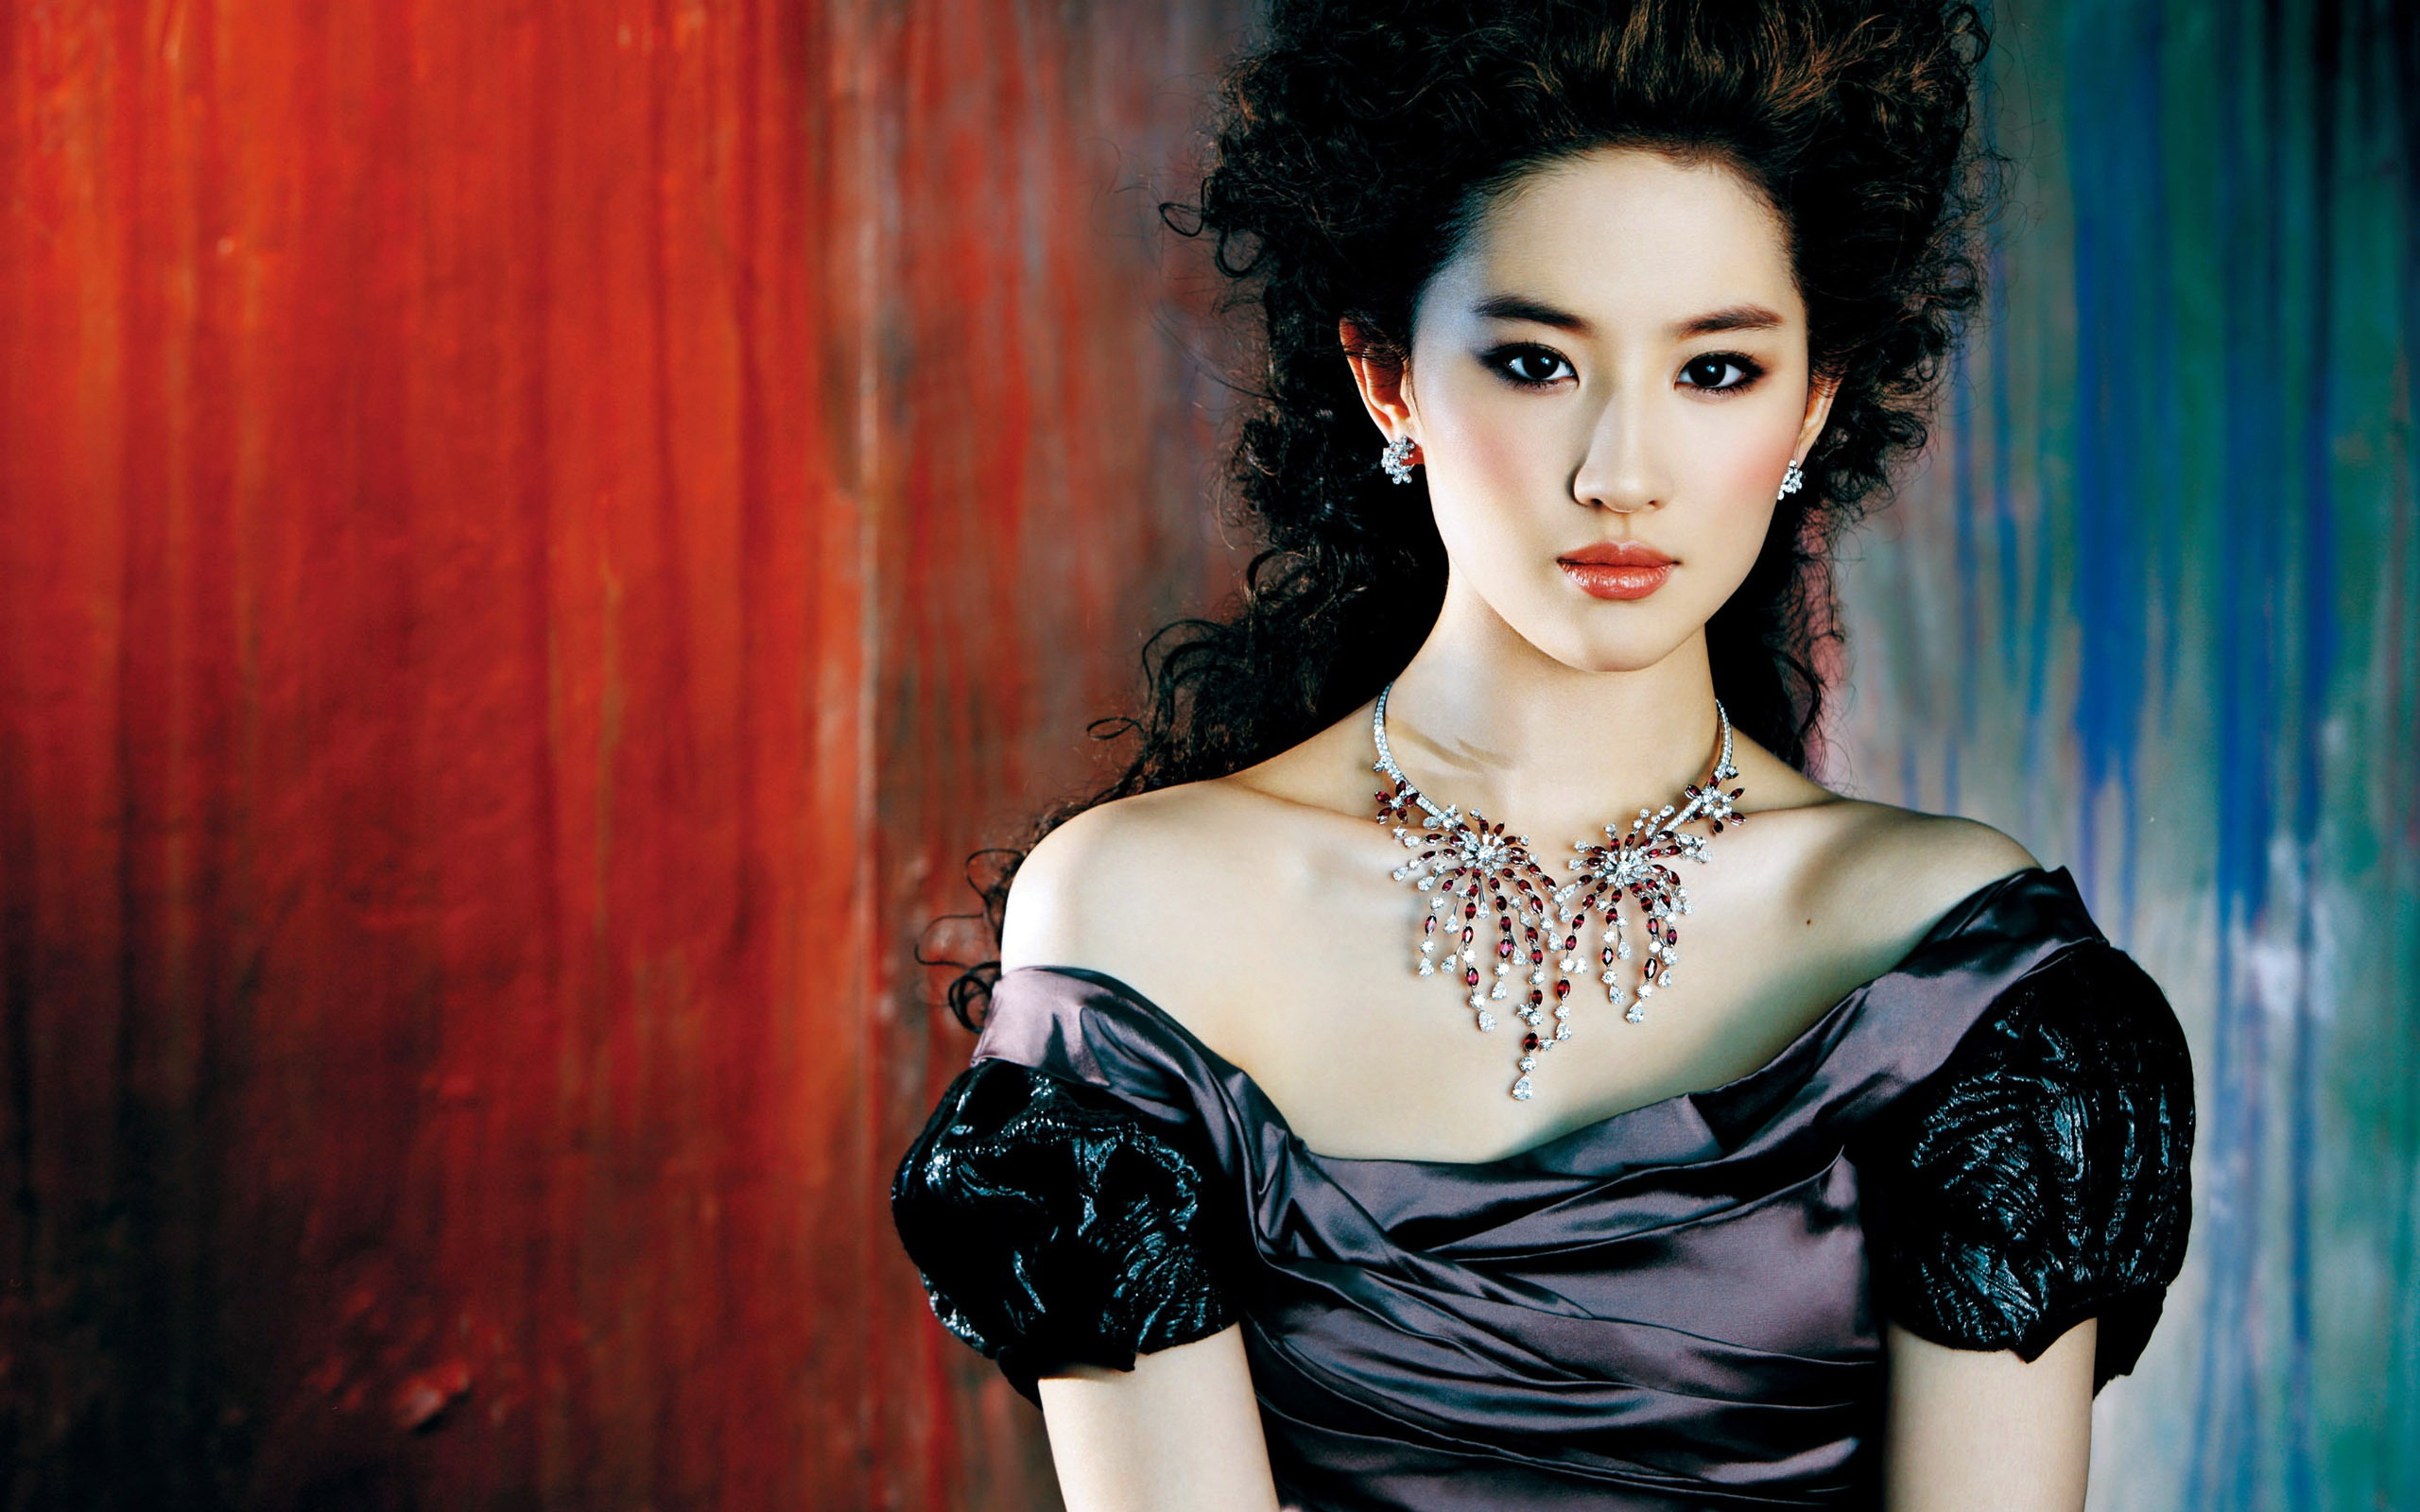 Liu Yifei Chinese Actress 342.59 Kb